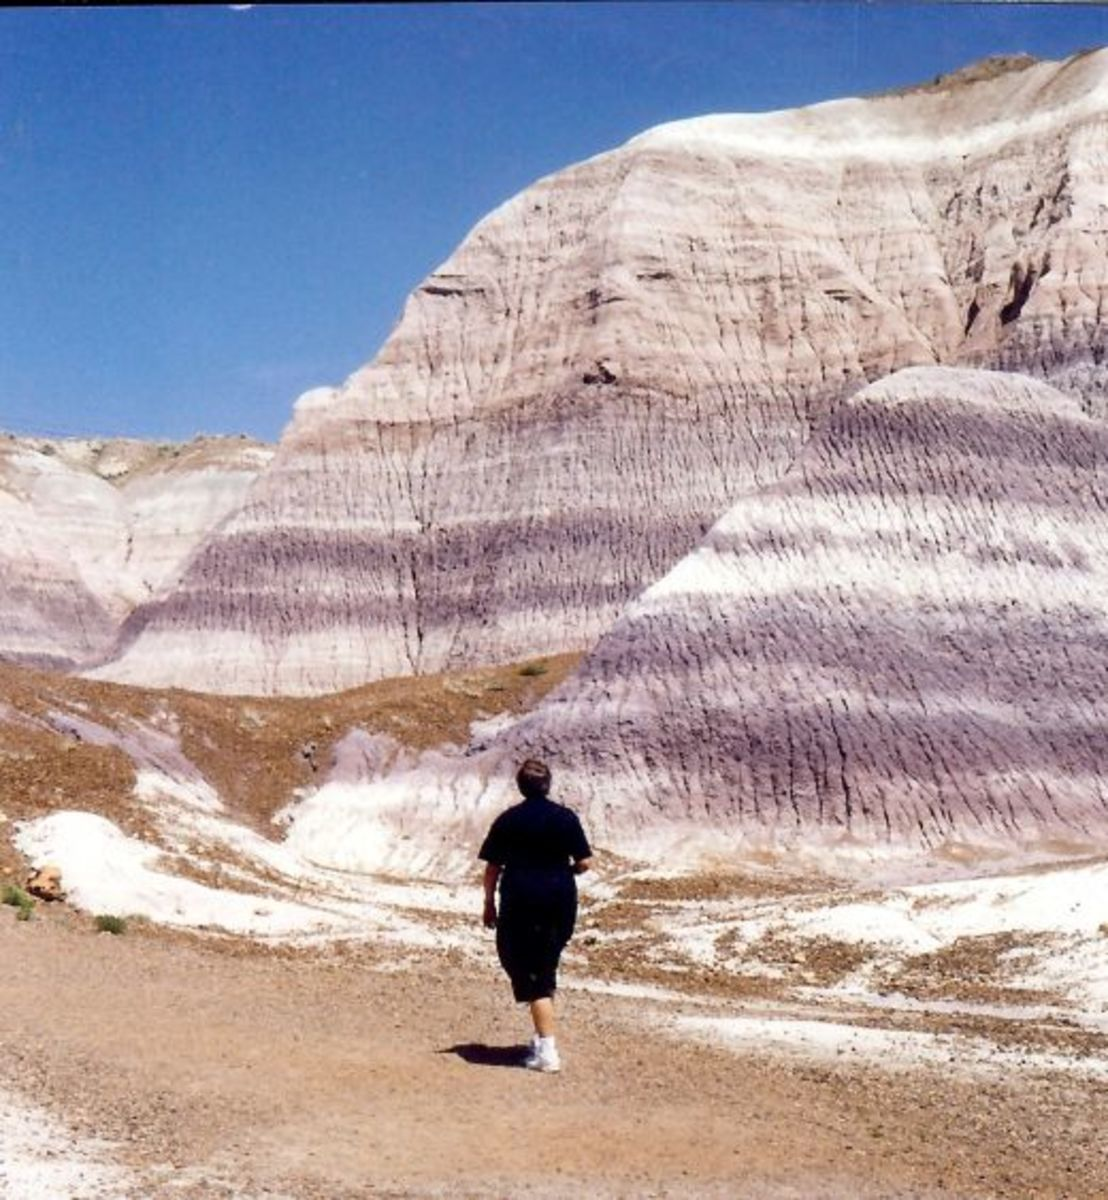 Be sure to carry lots of water with you if walking in the Badlands of the Petrified Forest National Park!